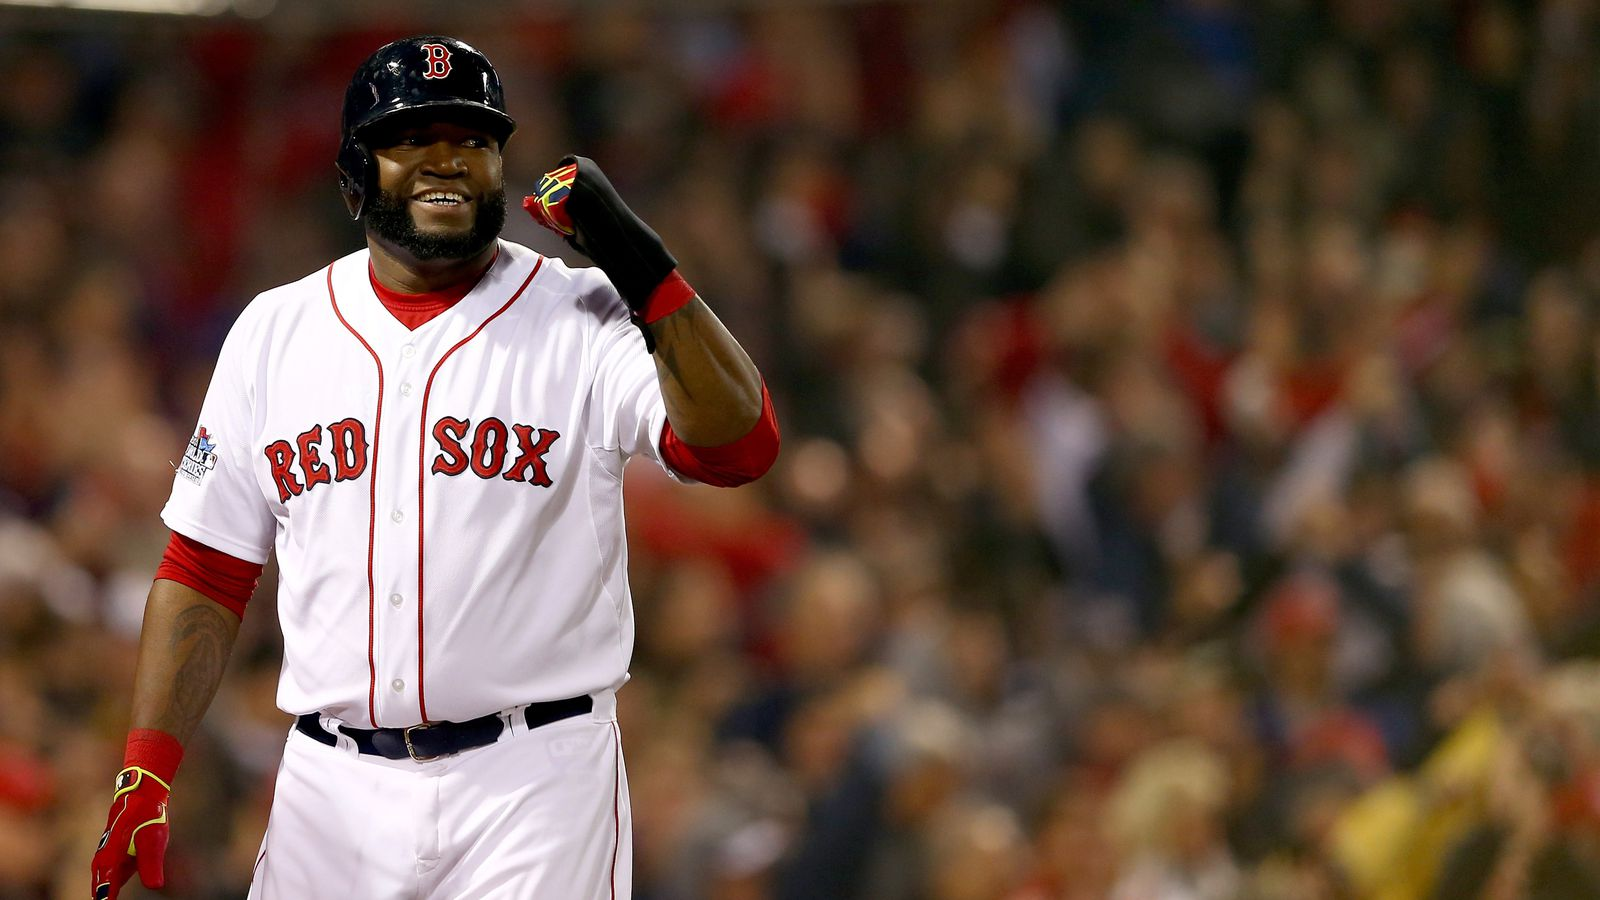 David Ortiz would 'love' a gay teammate